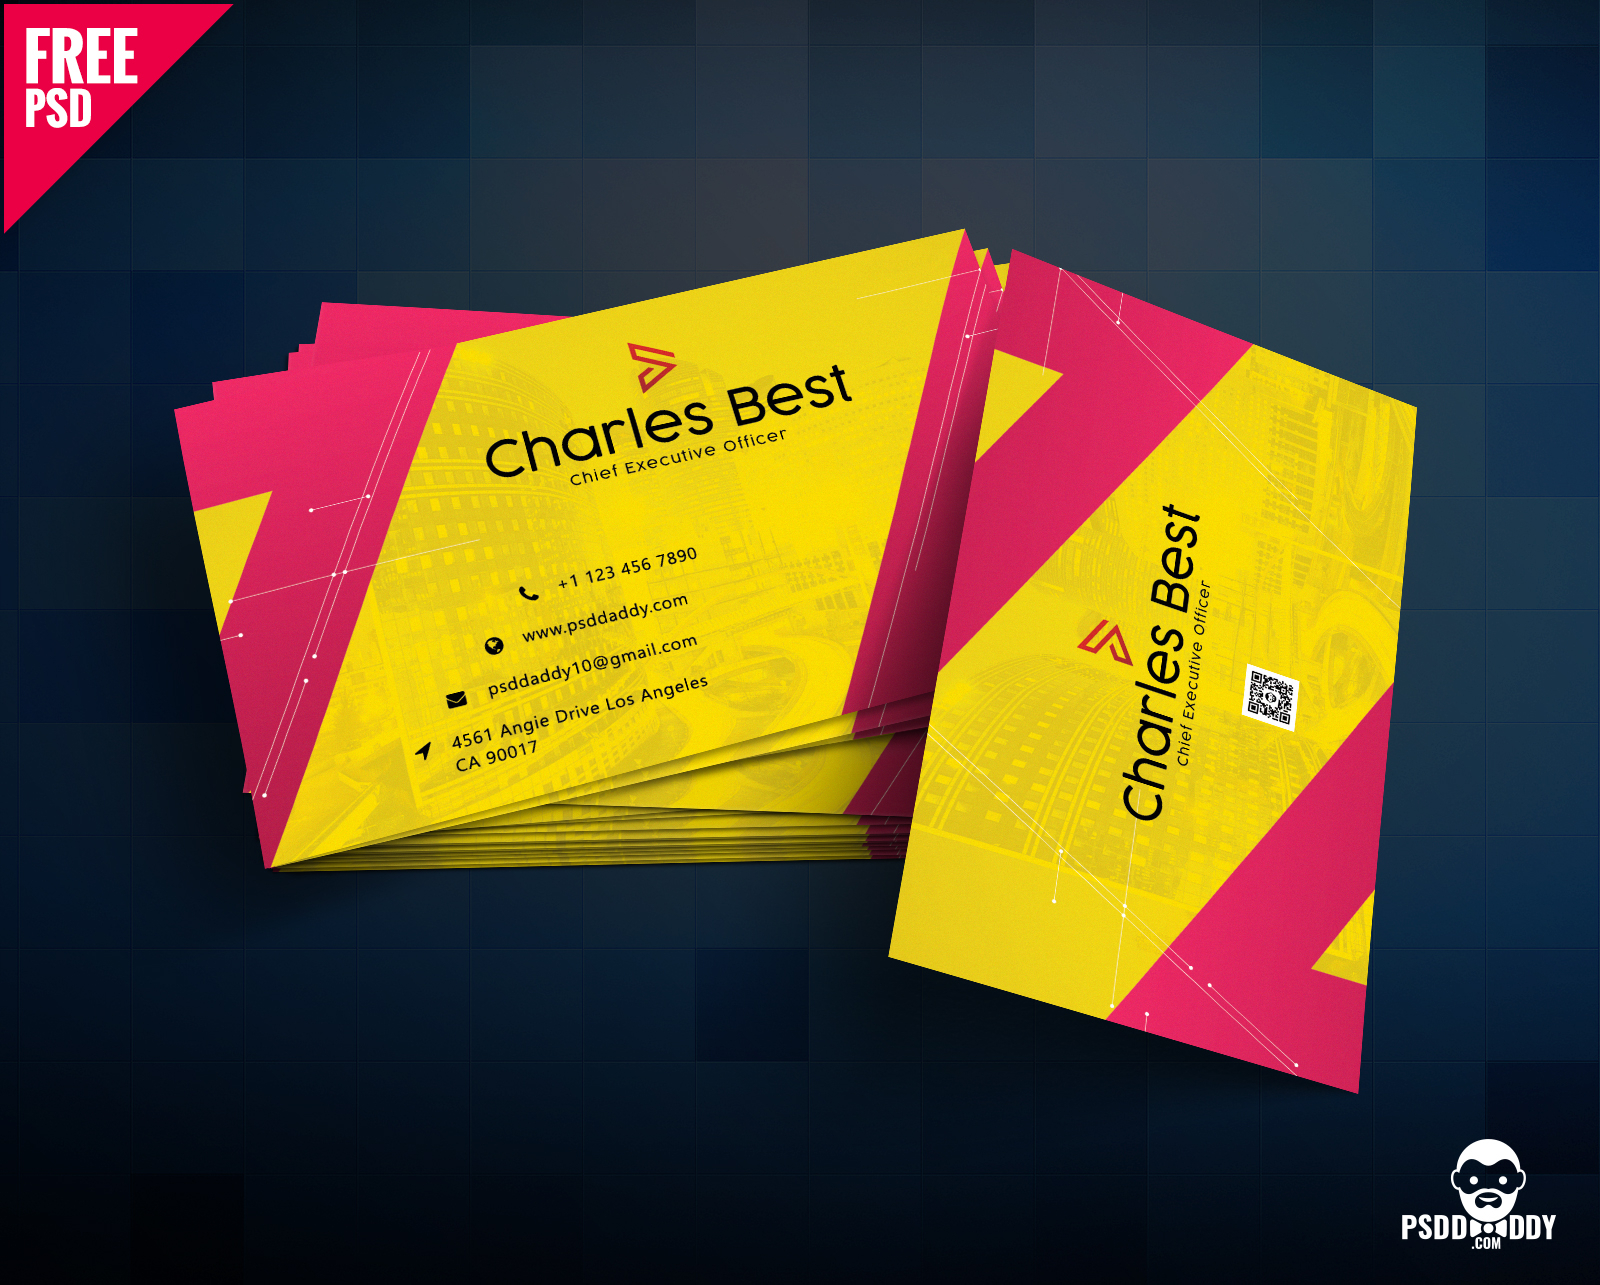 Download] Creative Business Card Free Psd | Psddaddy Within Photoshop Name Card Template